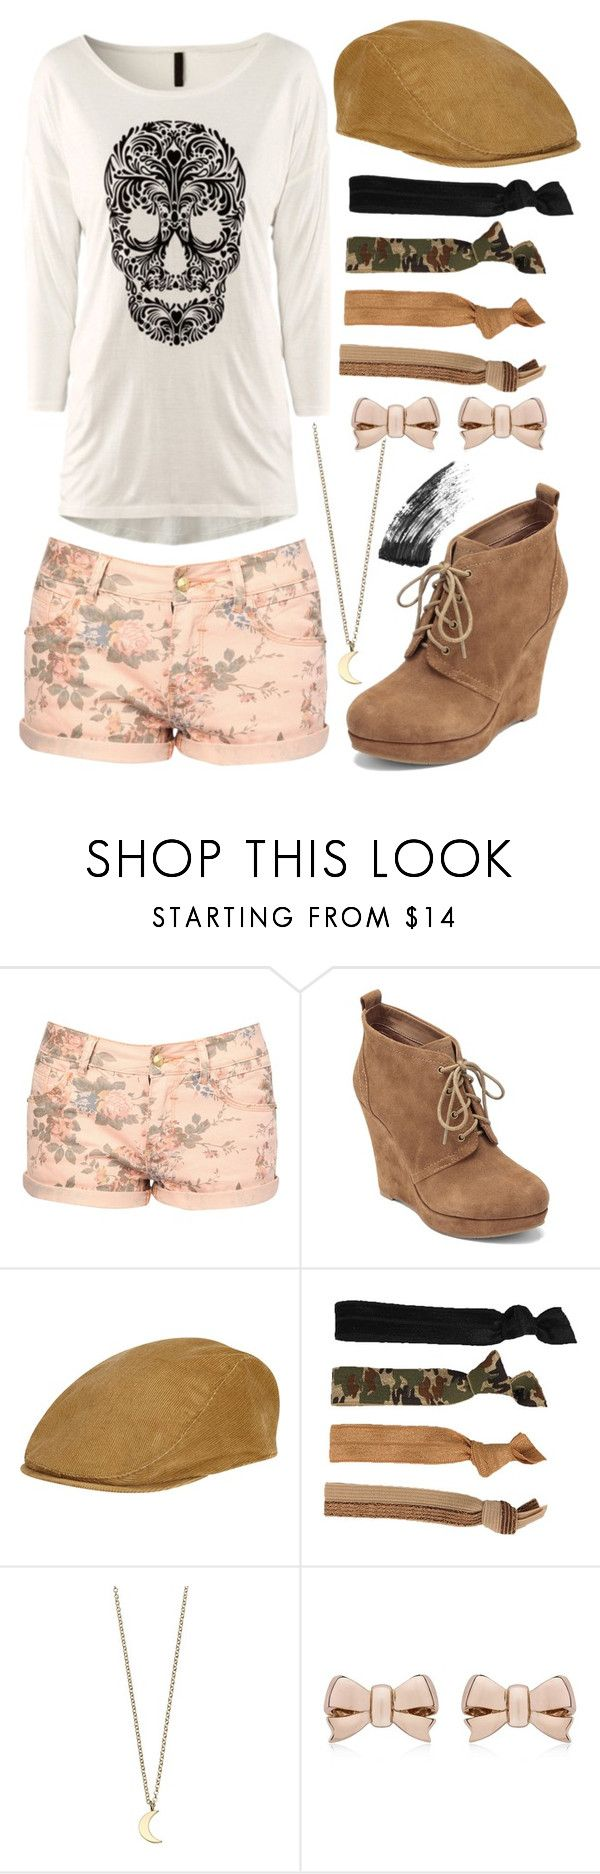 """//I'm built for the floor/ and I'm magic on the mike// Read below ^^"" by totallytrue ❤ liked on Polyvore featuring Jane Norman, Jessica Simpson, Puma, Glam Bands, Minor Obsessions, Thomas Sabo and Charlotte Tilbury"